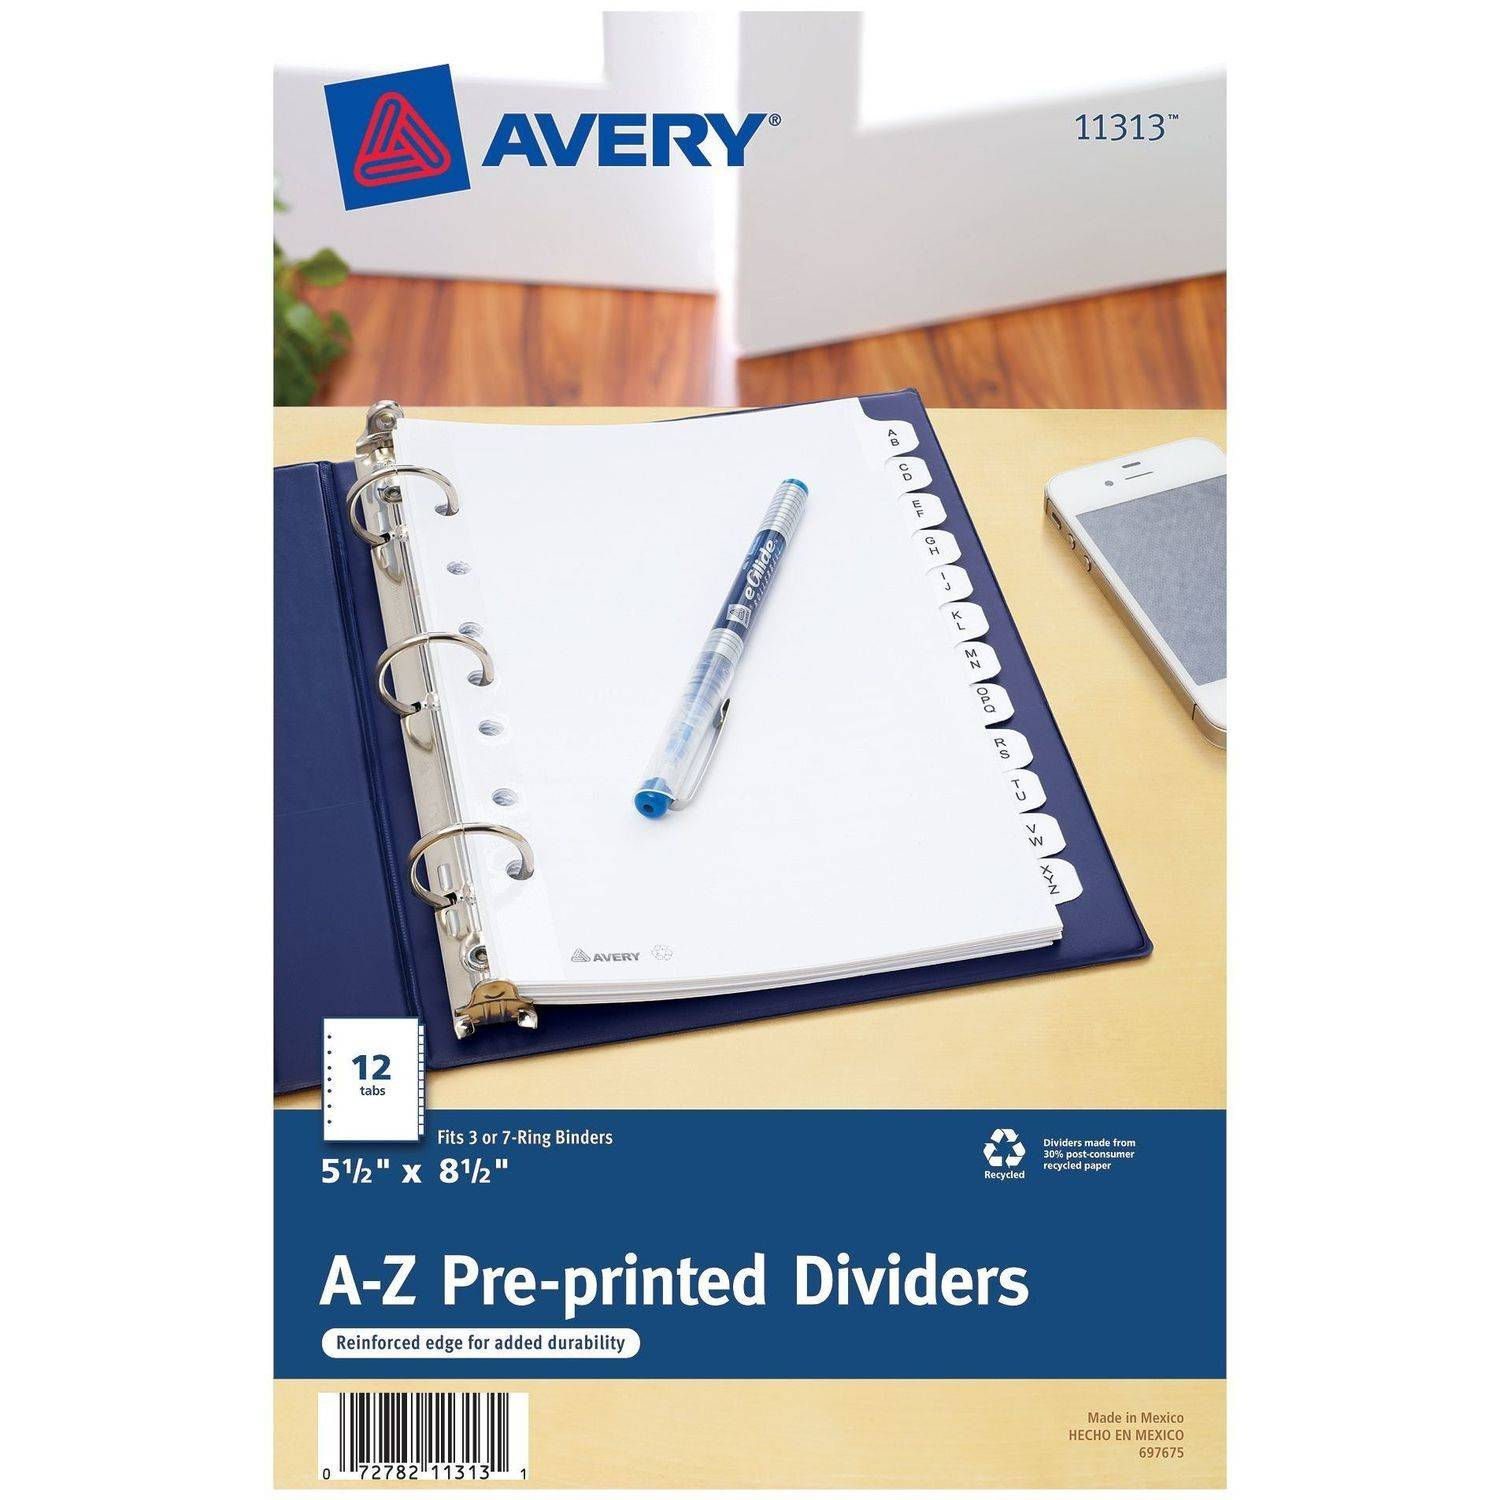 """Avery Mini Pre-printed Dividers with A-Z Tabs 11313, 5-1/2"""" x 8-1/2"""", 12-Tab Set, White"""